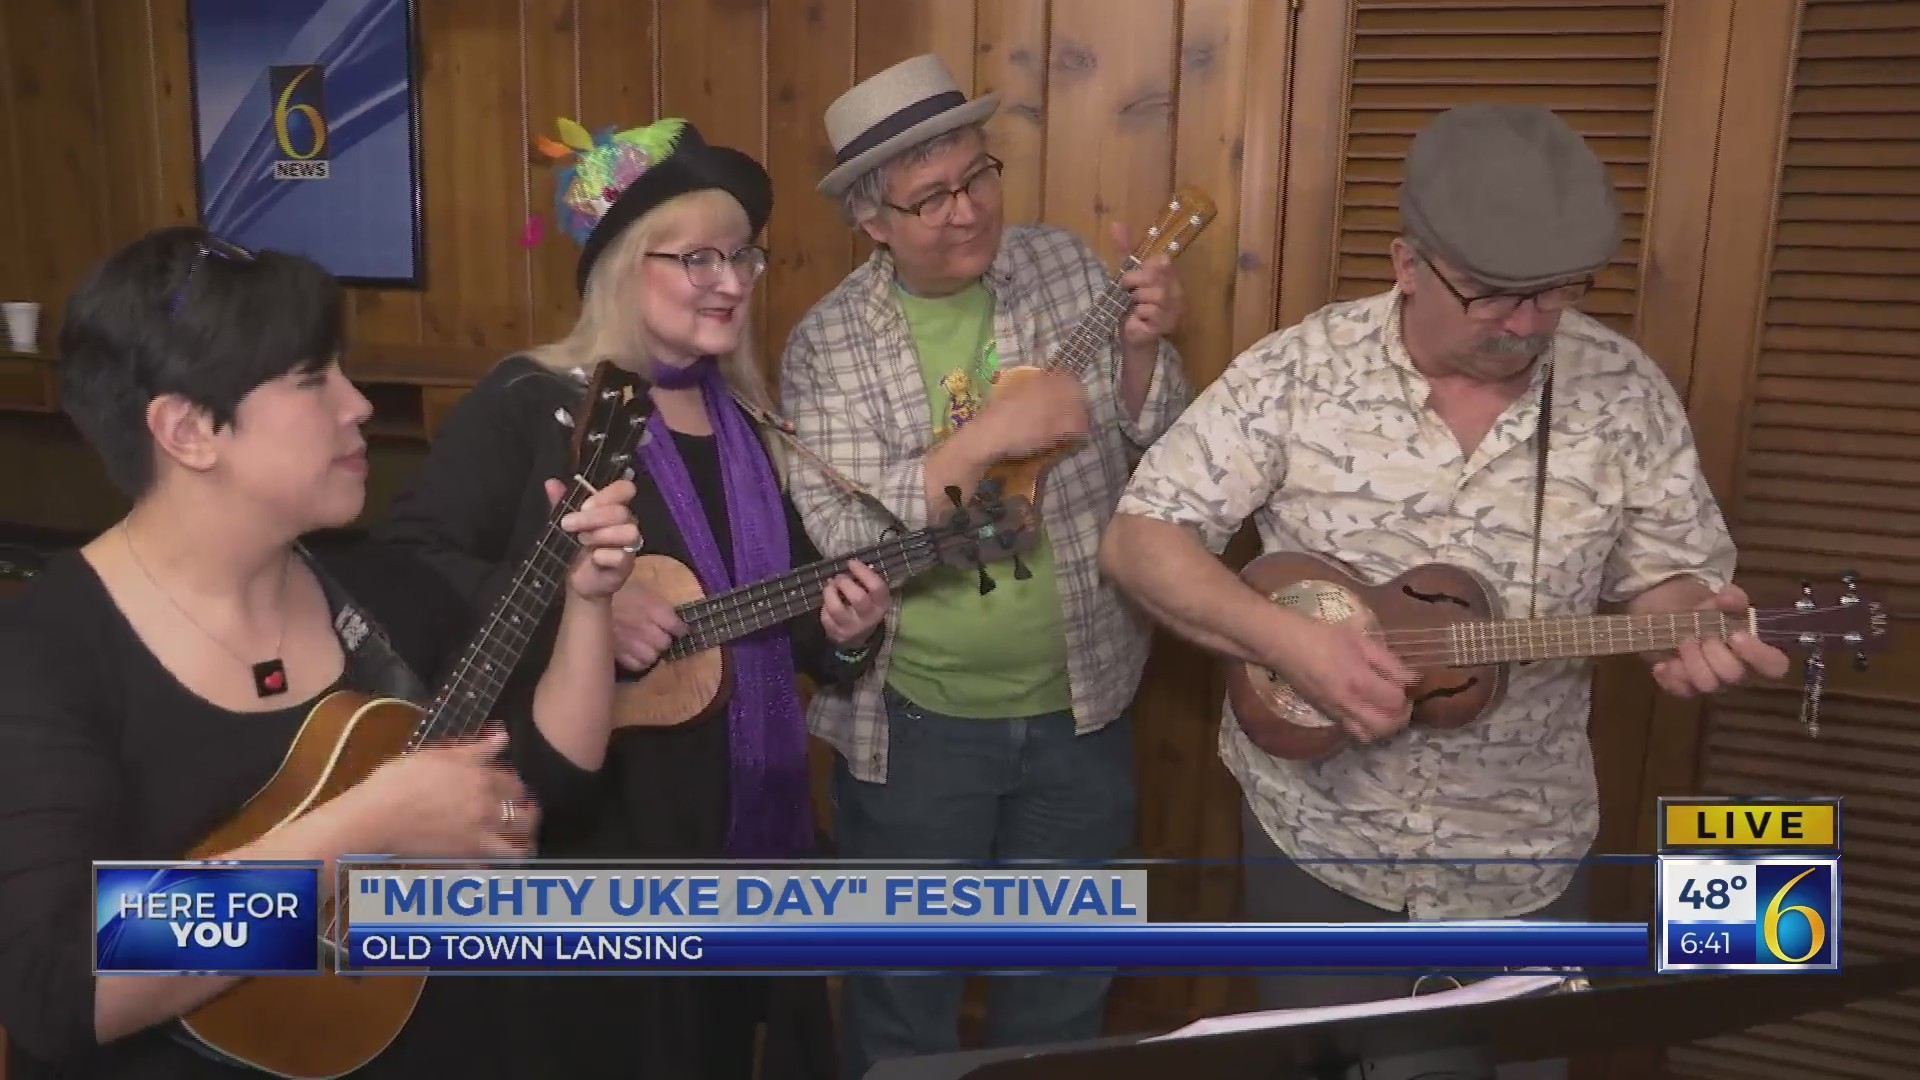 This Morning: Mighty Uke Day